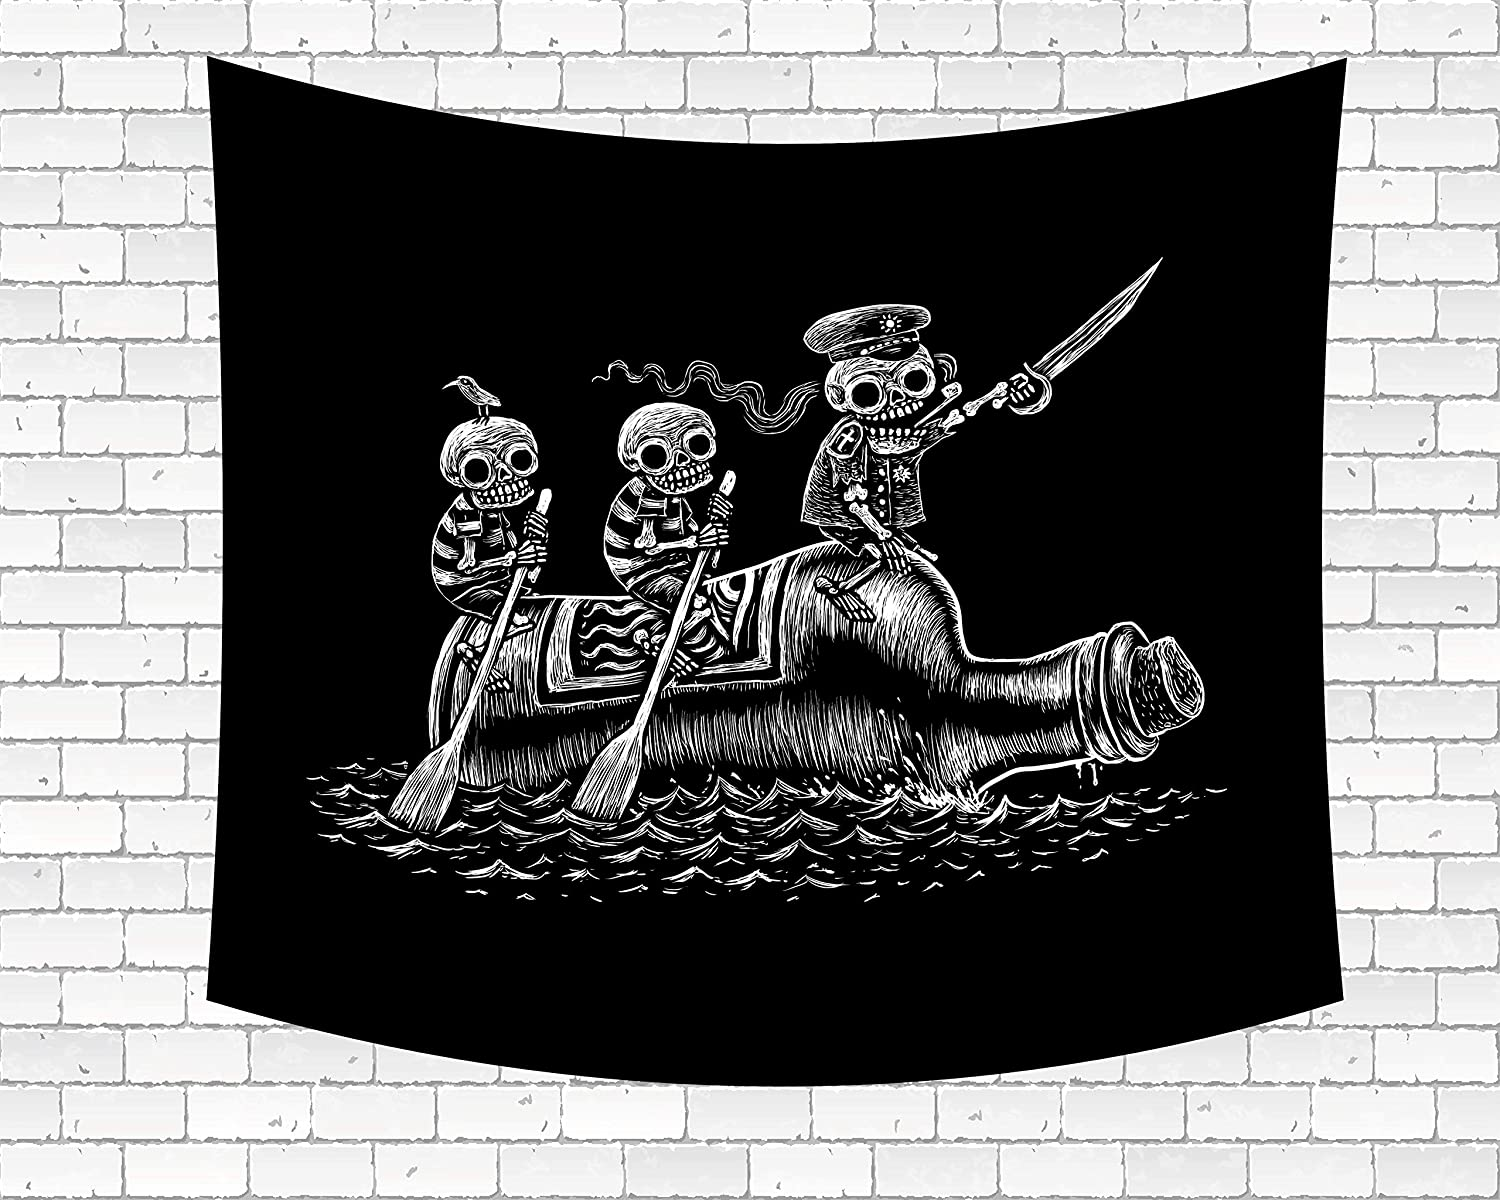 "Wamika Funny Pirate Skull Tapestry Wall Art Skeletons Sea Voyage Sailors Tapestry Wall Hanging Home Decor Tapestries for Dorm Living Room Bedroom Hippie Bohemian Tapestry Black and White 60"" X 80"""